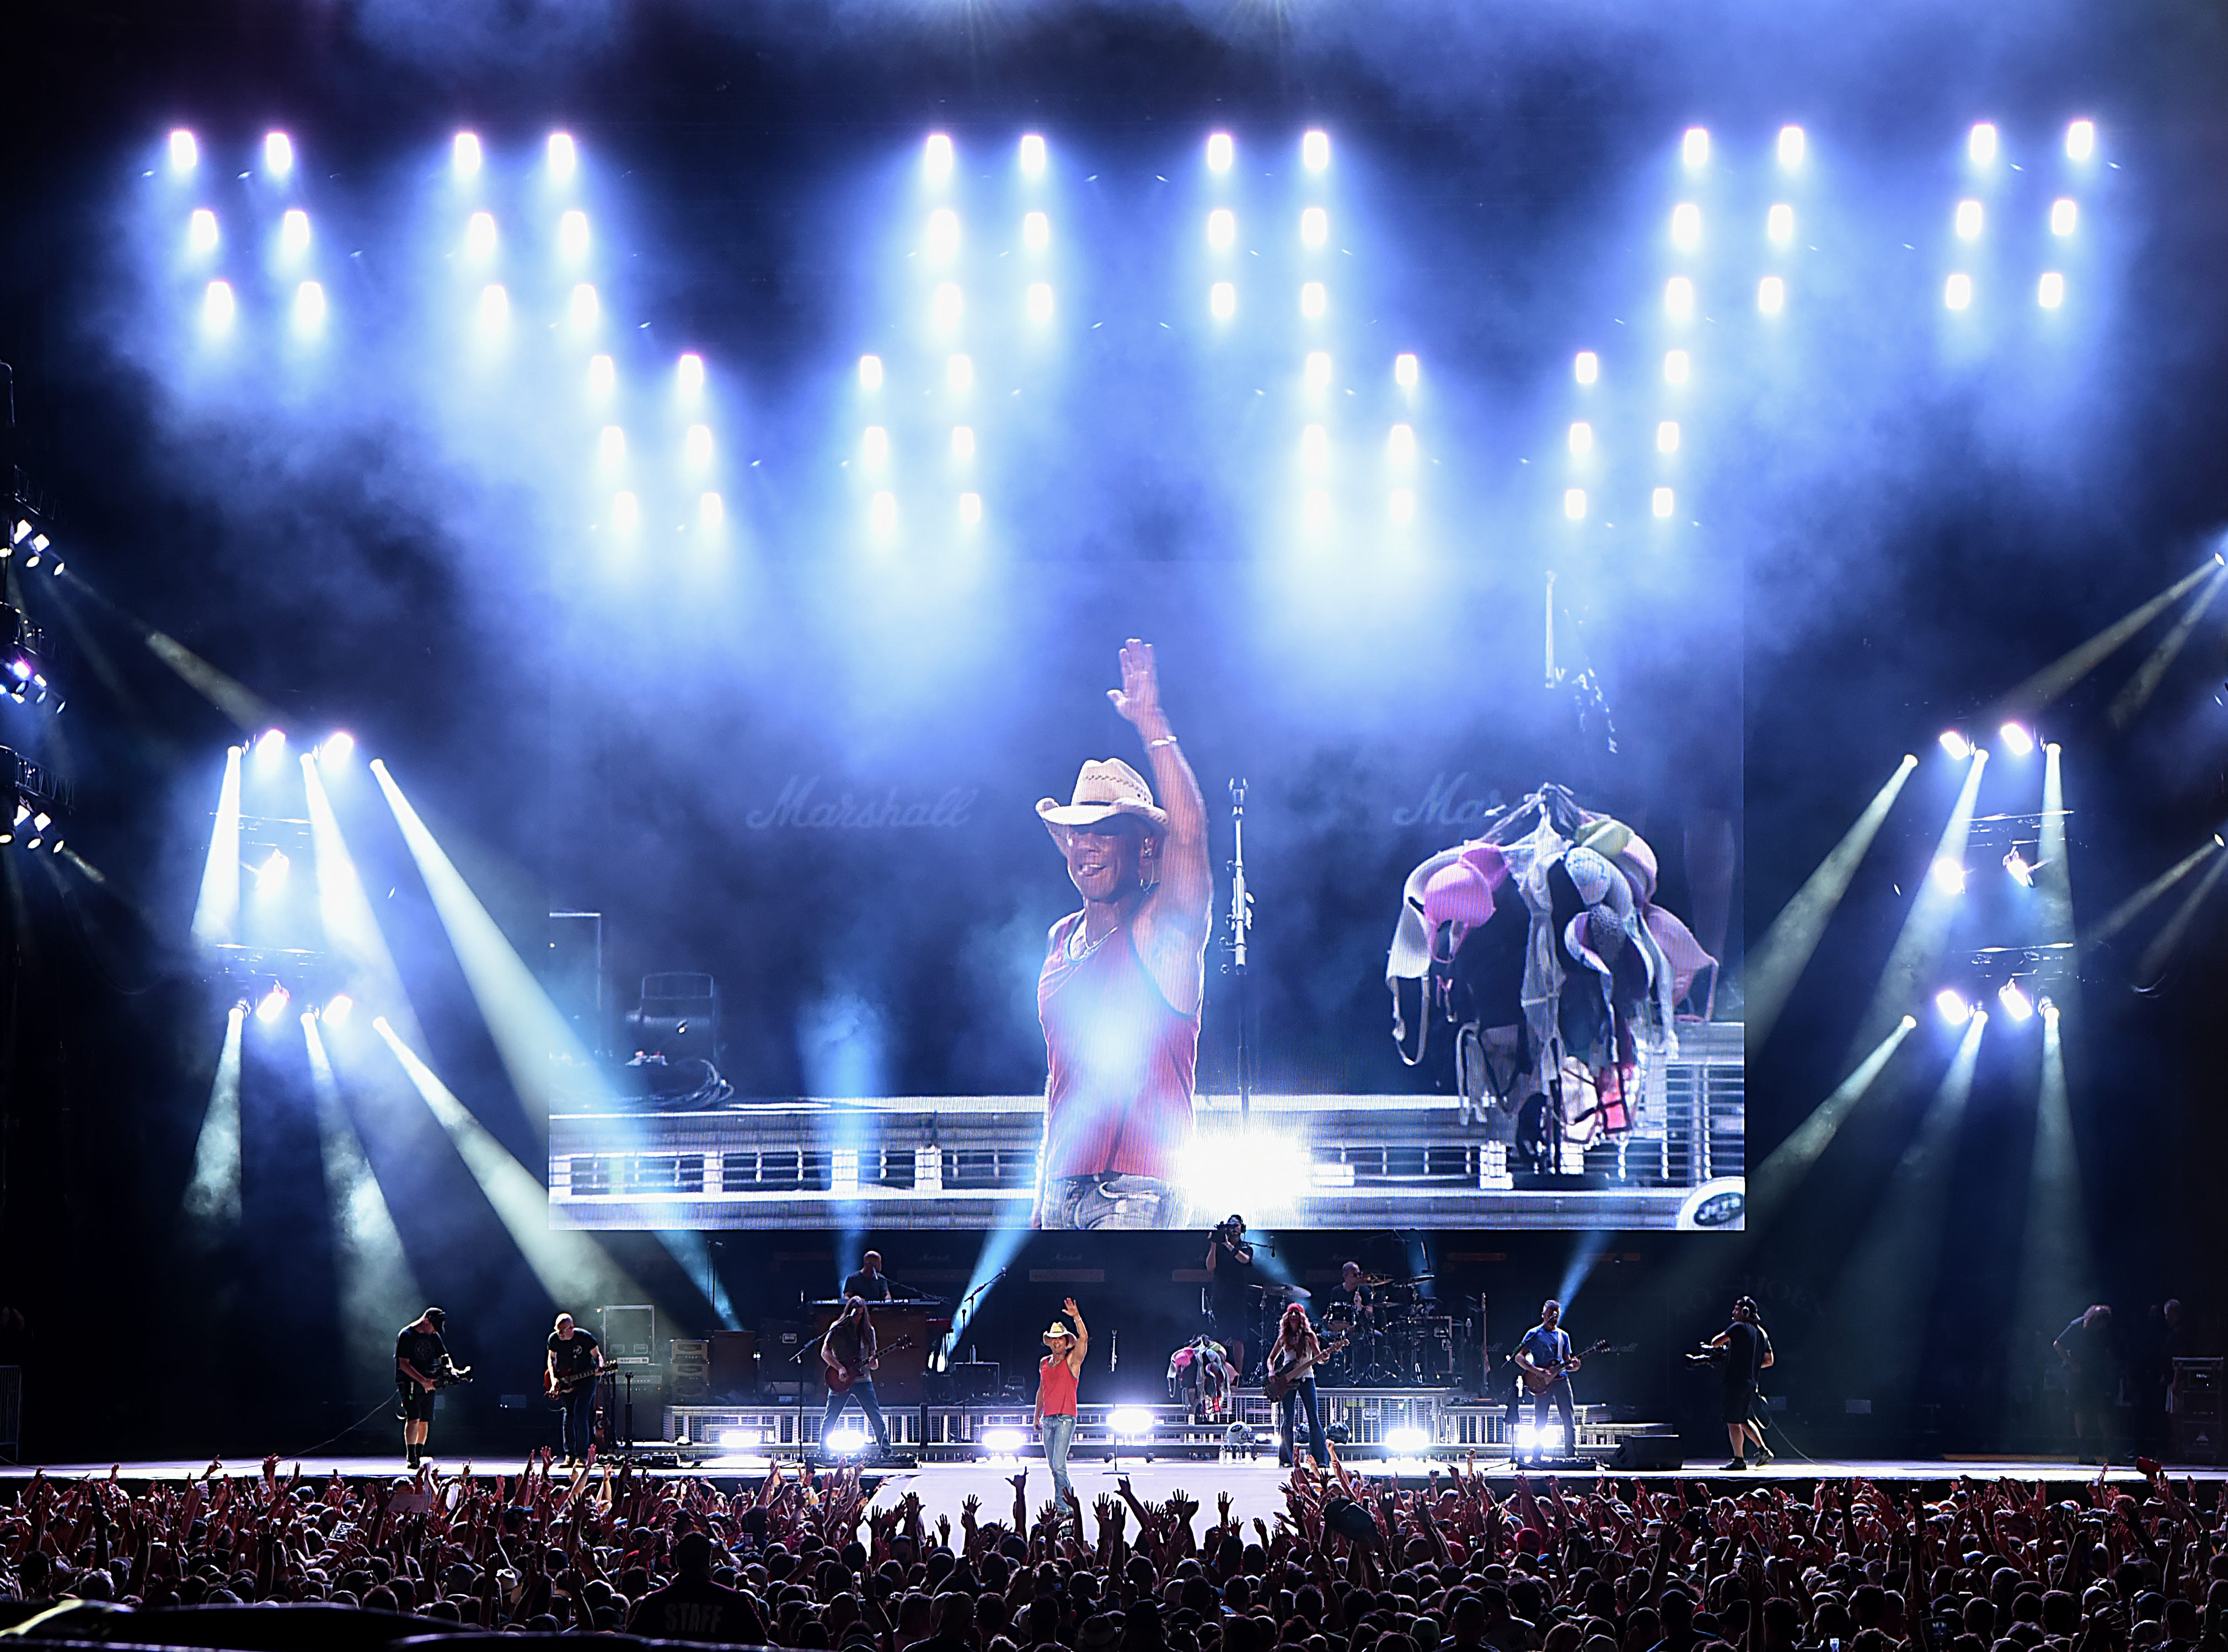 Kenny Chesney concert at MetLife stadium in East Rutherford on Saturday August 18, 2018.